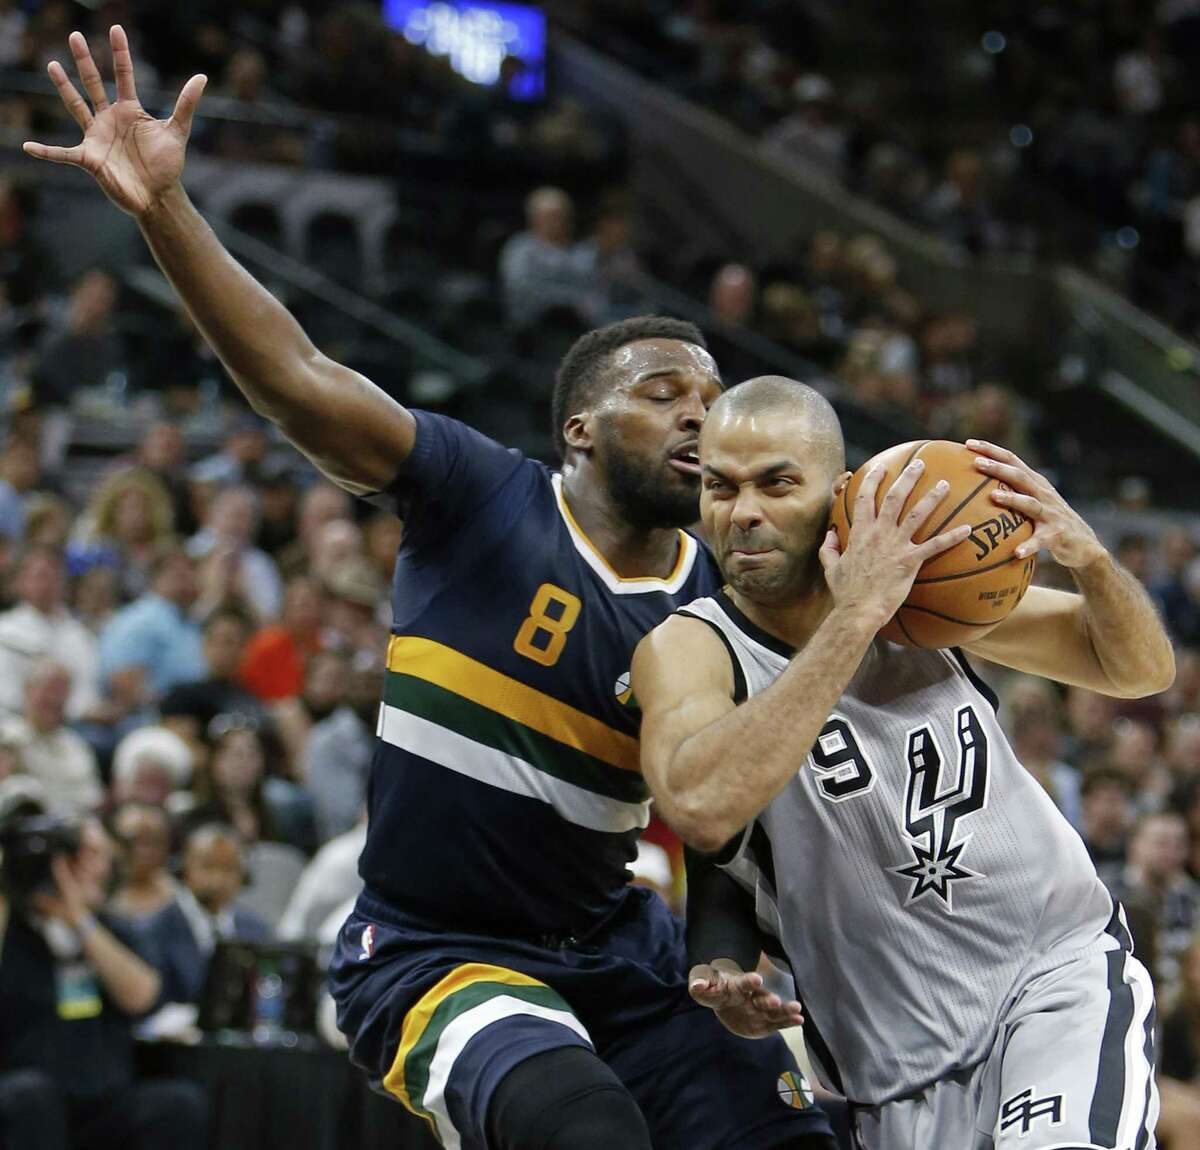 Spurs' Tony Parker looks for room around the Utah Jazz's Shelvin Mack during their game April 2, 2017 at the AT&T Center.